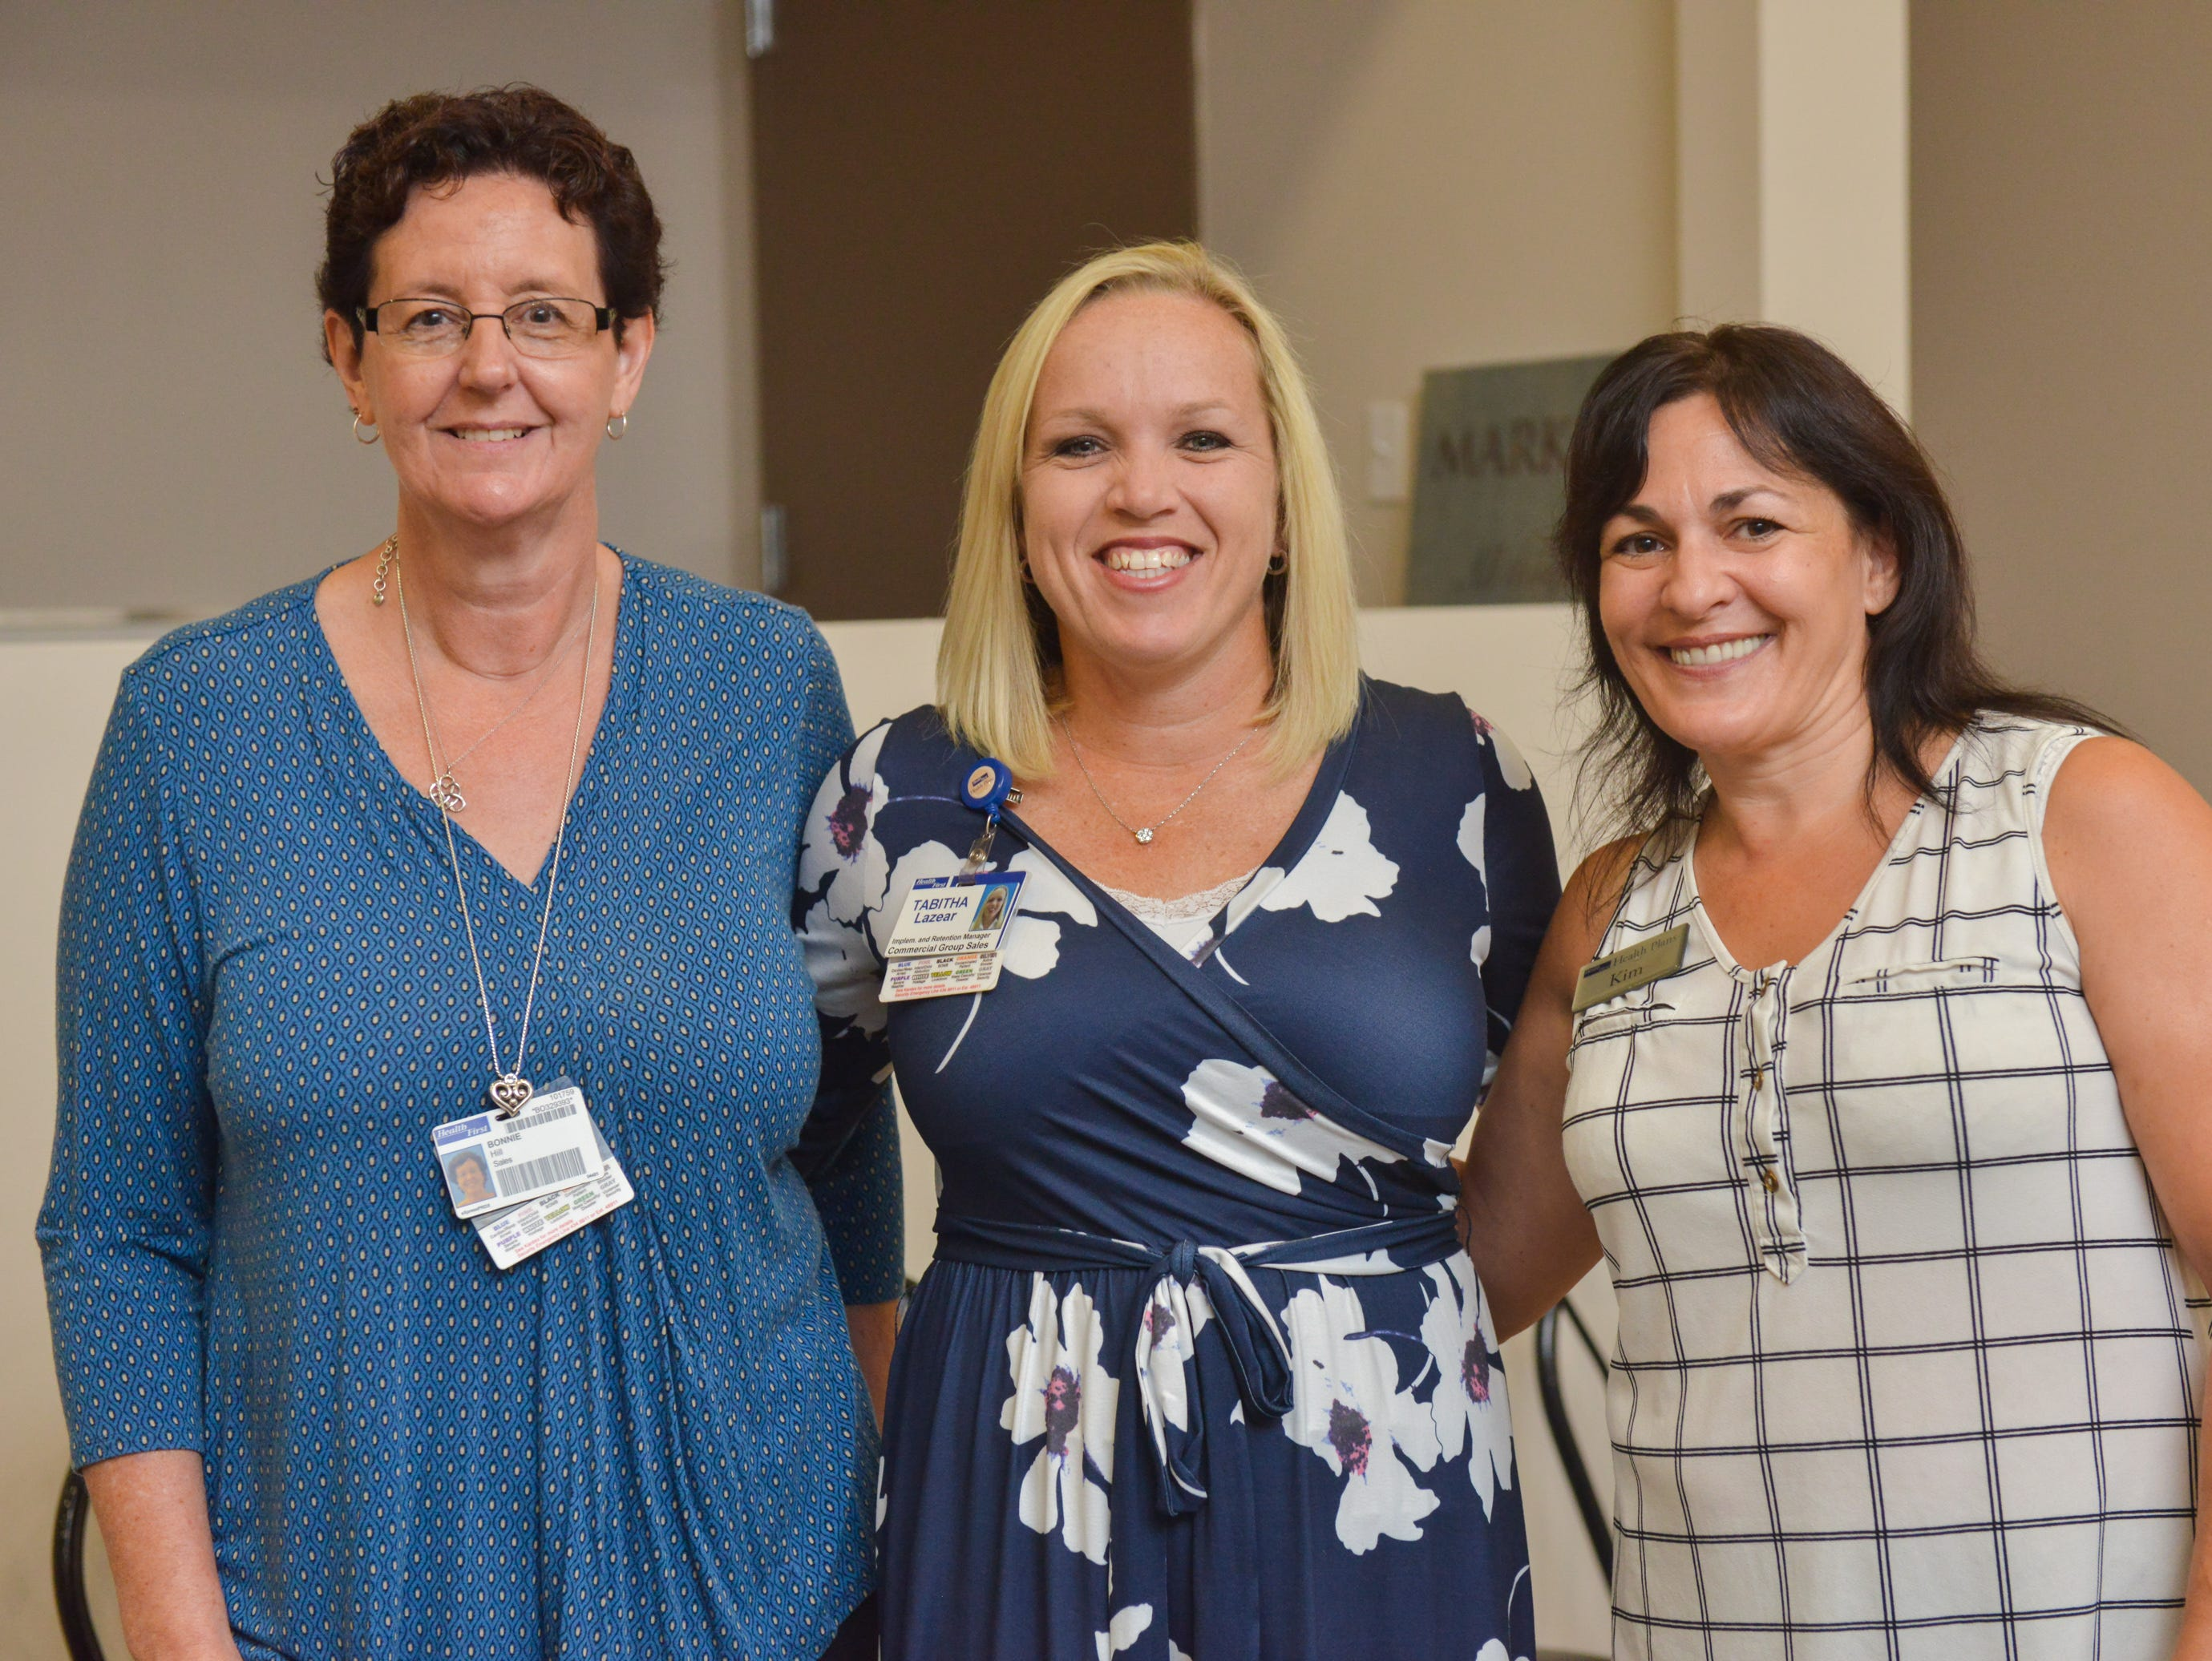 Bonnie Hill, Tabitha Lazear and Kim DelRio during the Women of Excellence Gathering at Promise in Brevard sponsored by the Melbourne Regional Chamber.